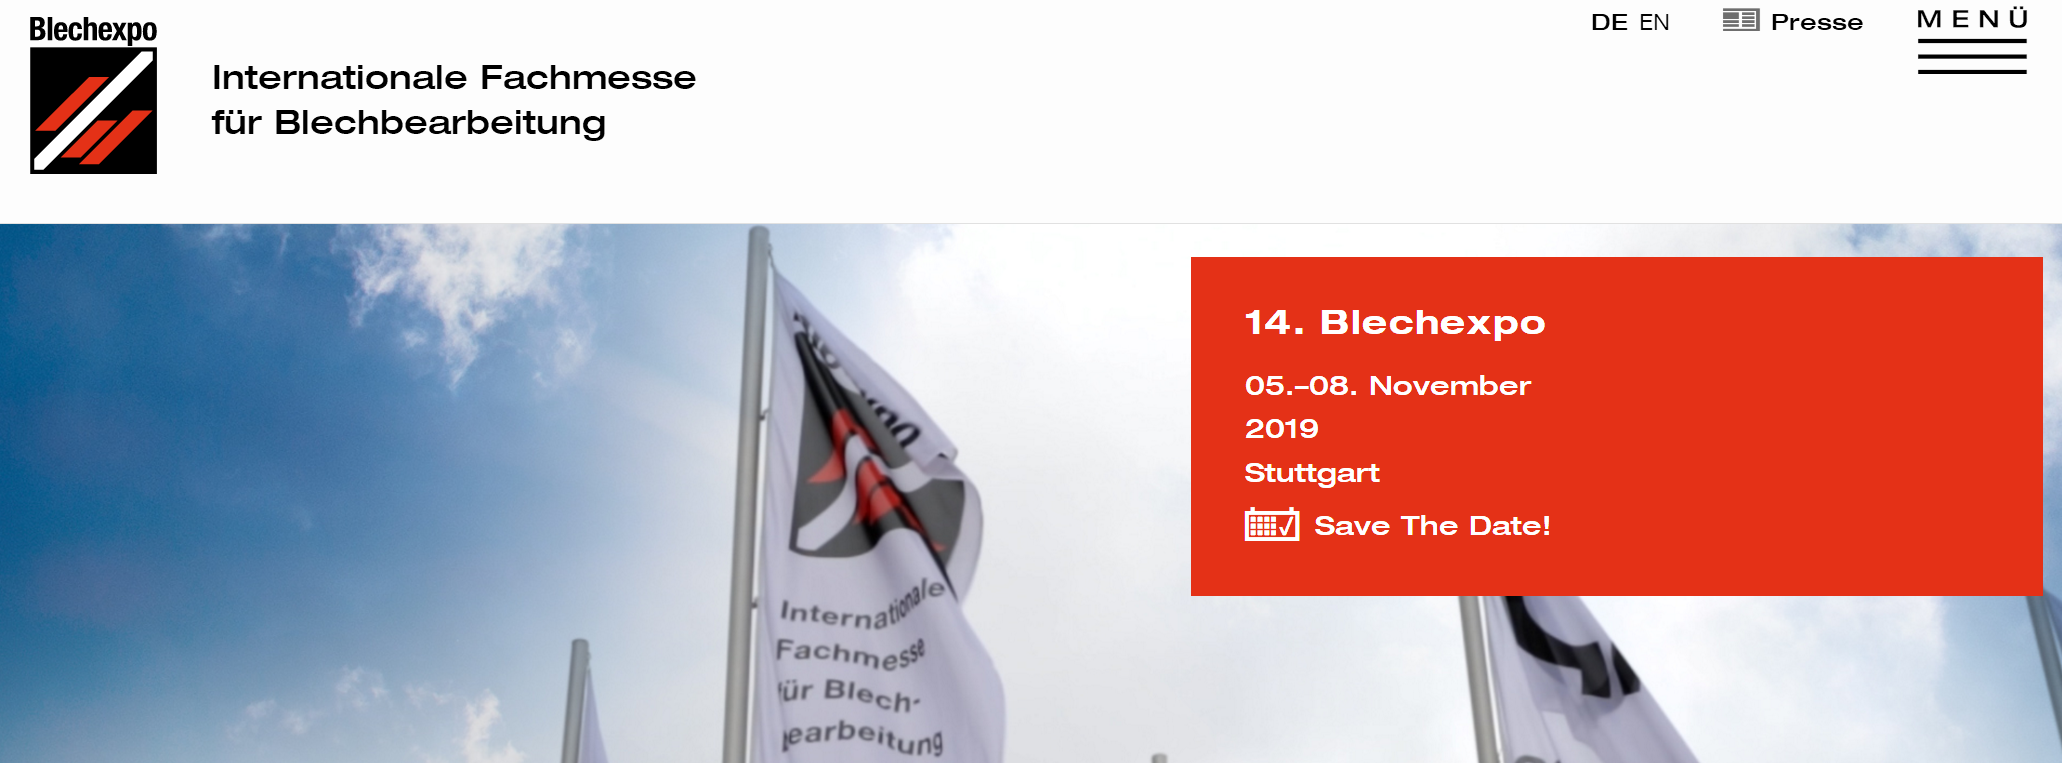 BLENCHEXPO 2019 IN GERMANY